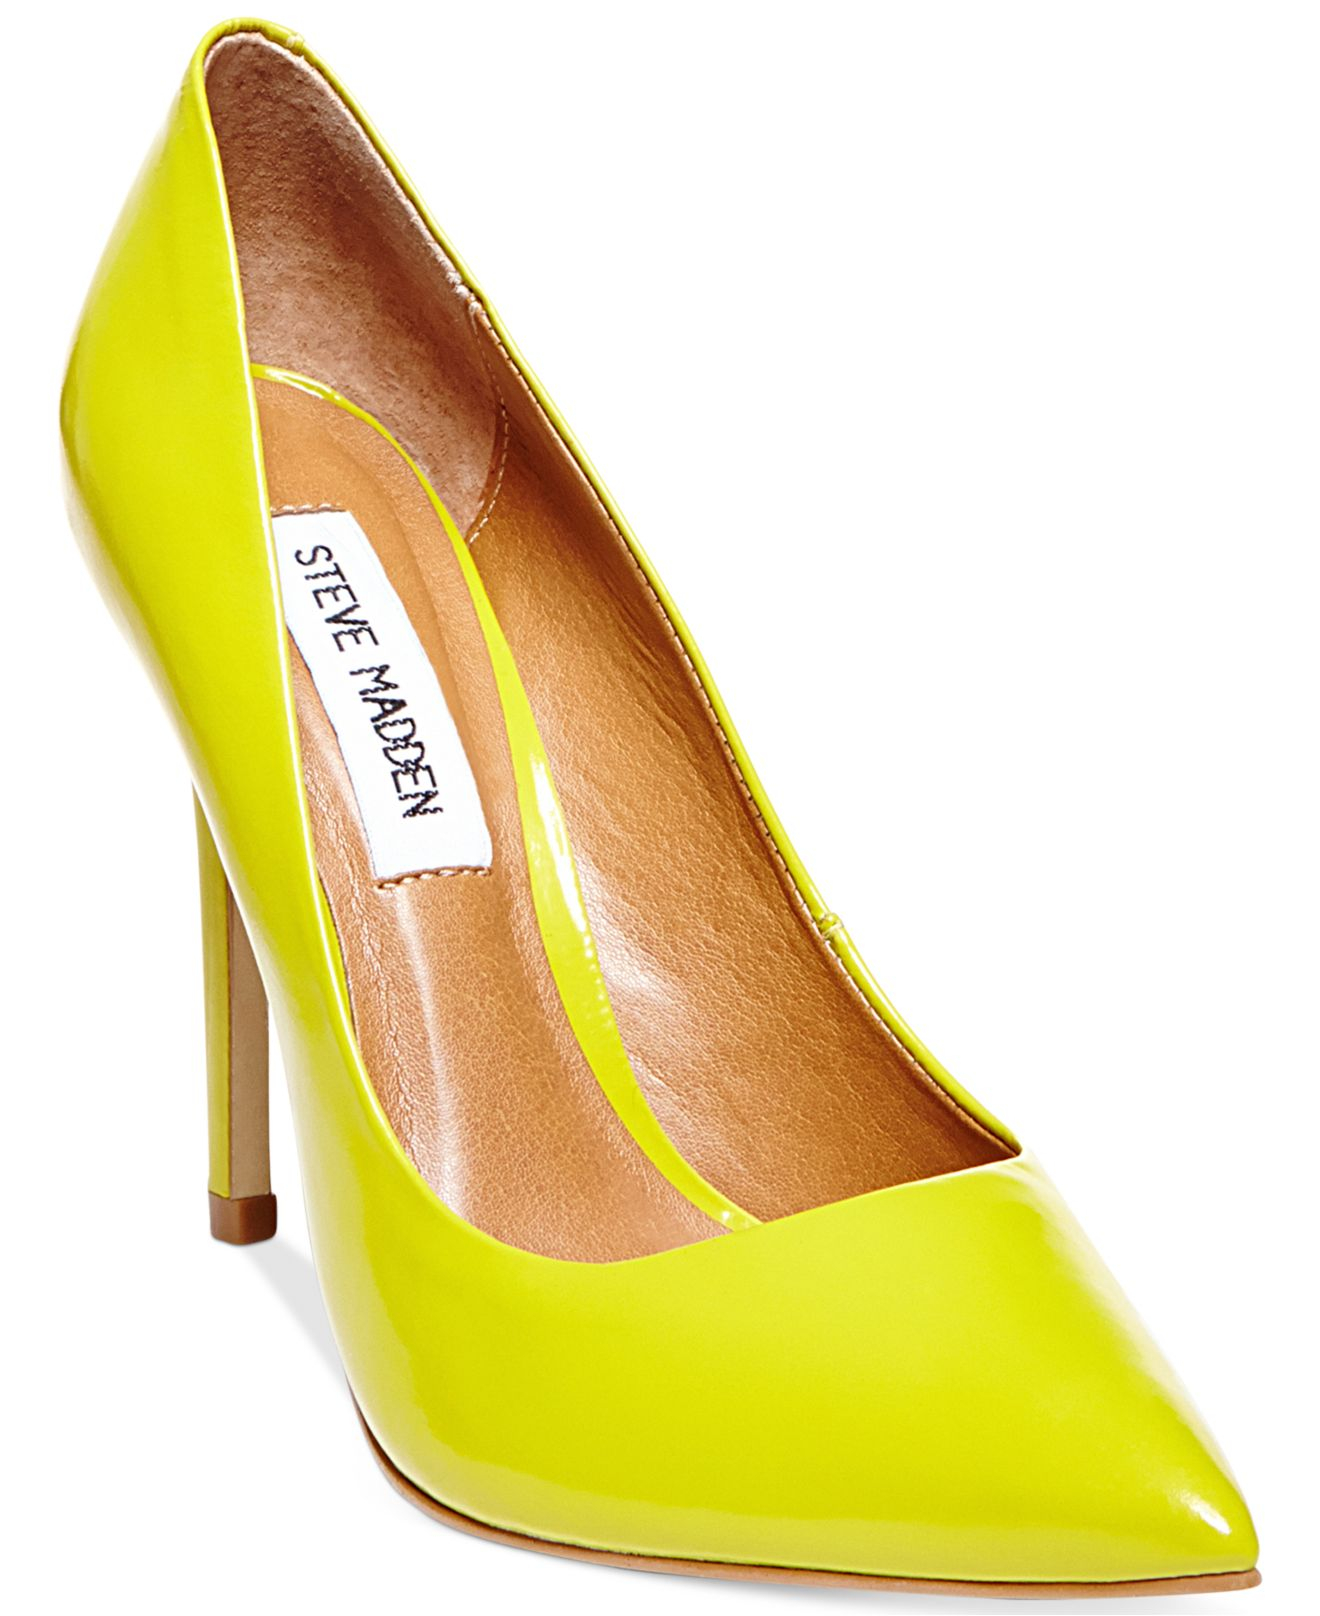 affd07d3d7e4 Gallery. Previously sold at  Macy s · Women s Yellow Heels ...